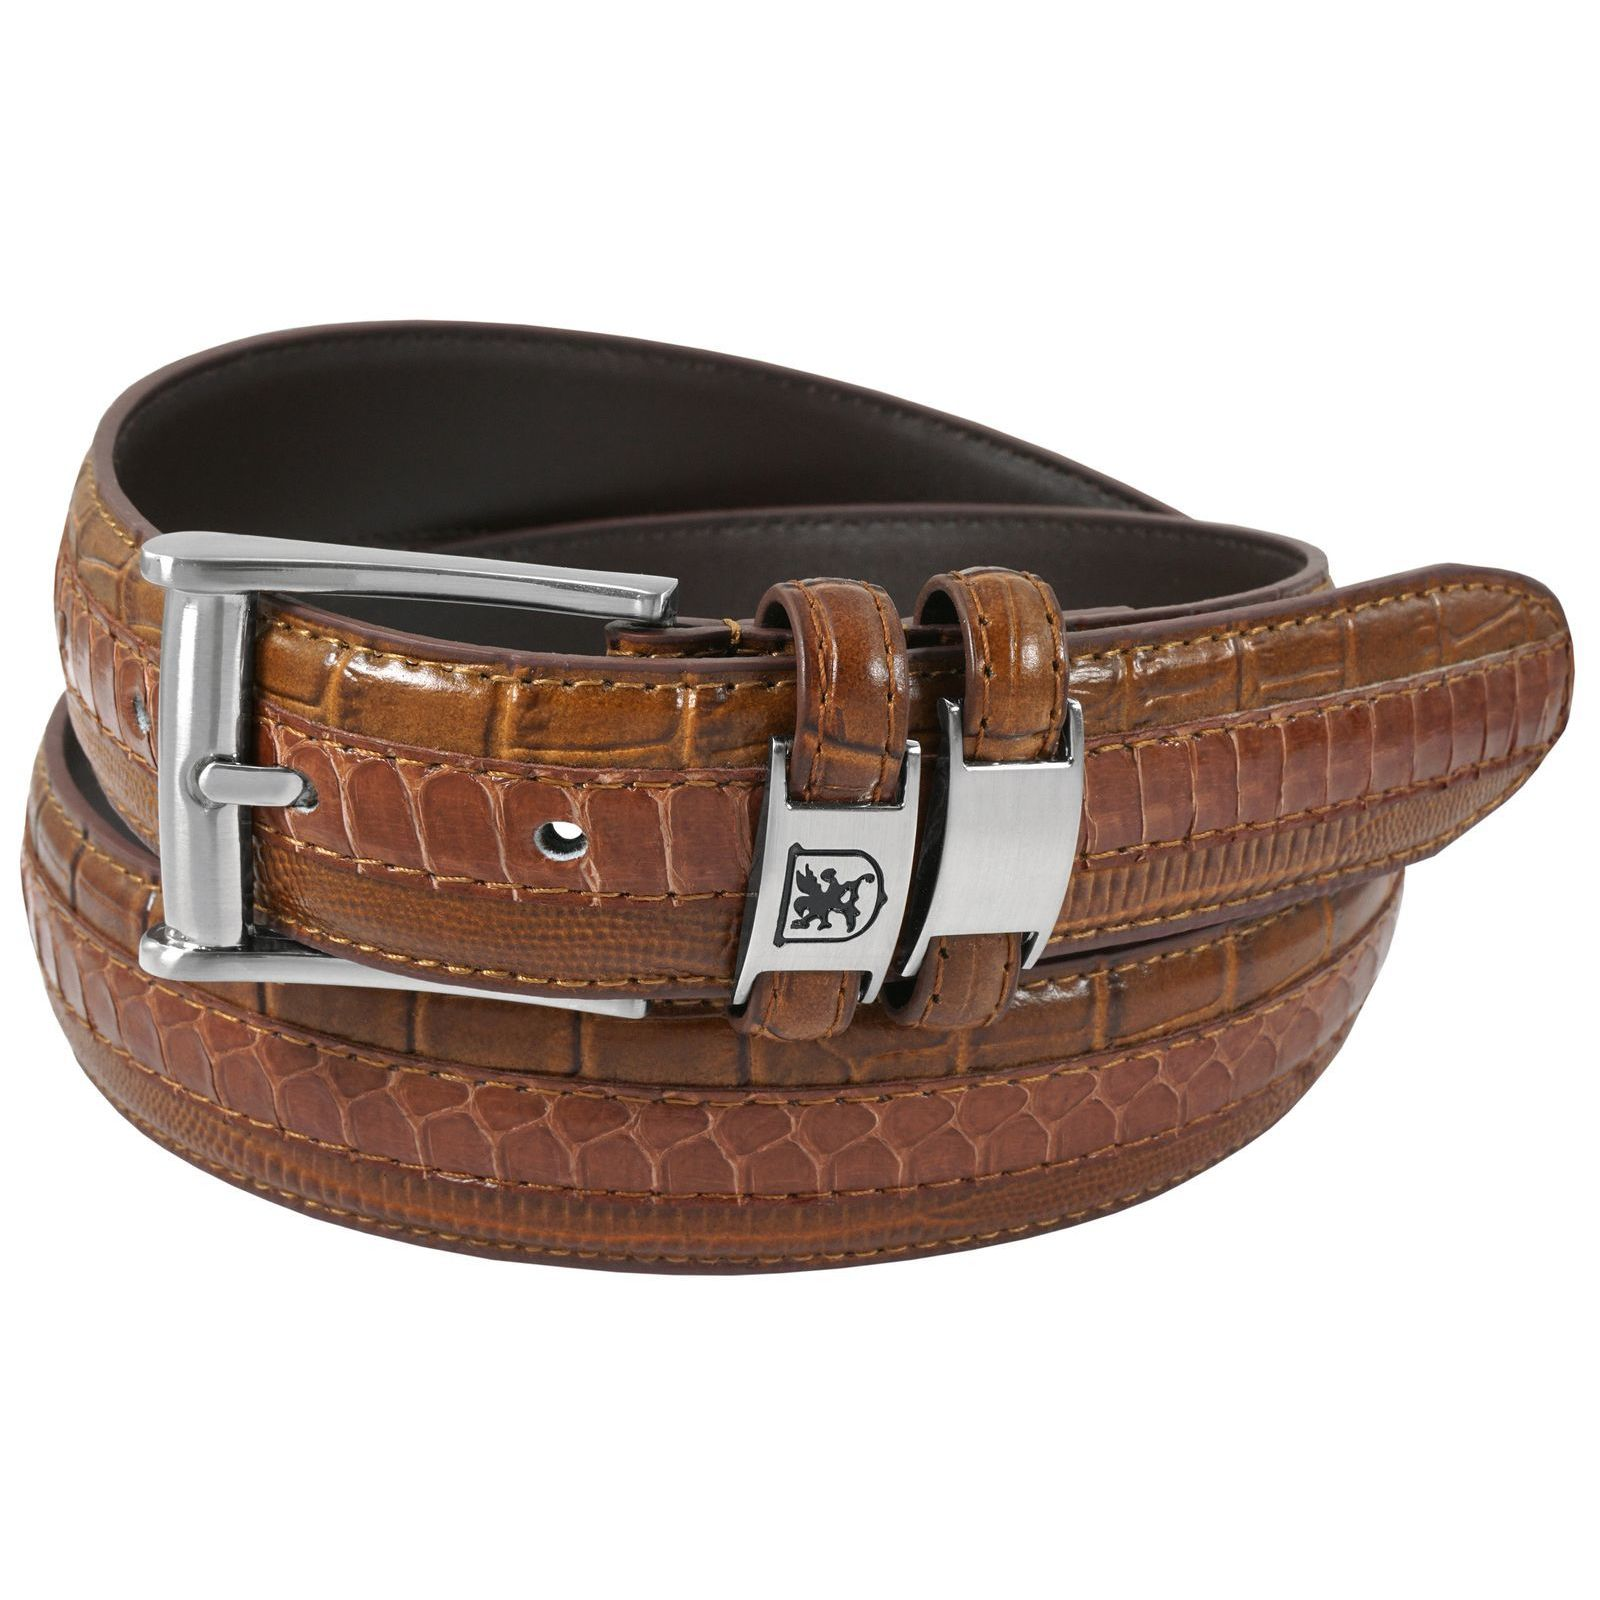 Lizard and Snake Skin Embossing Brown Color Genuine Leather Belt with Alligator